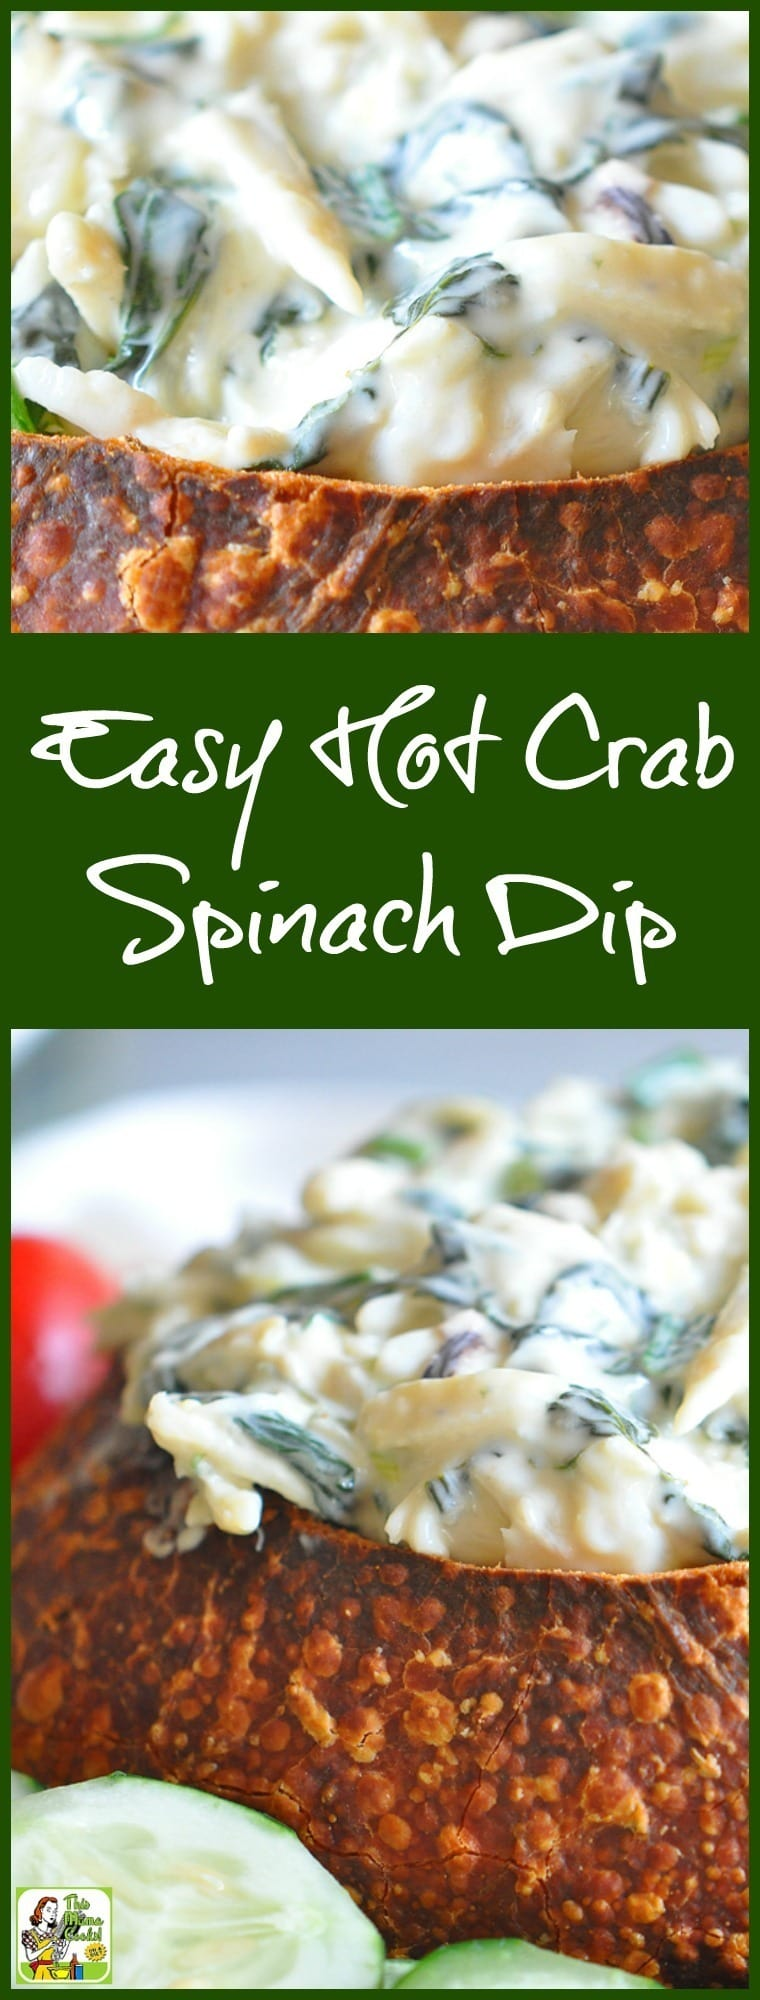 Hot Crab Spinach Dip Recipe Baked in French Bread Bowl